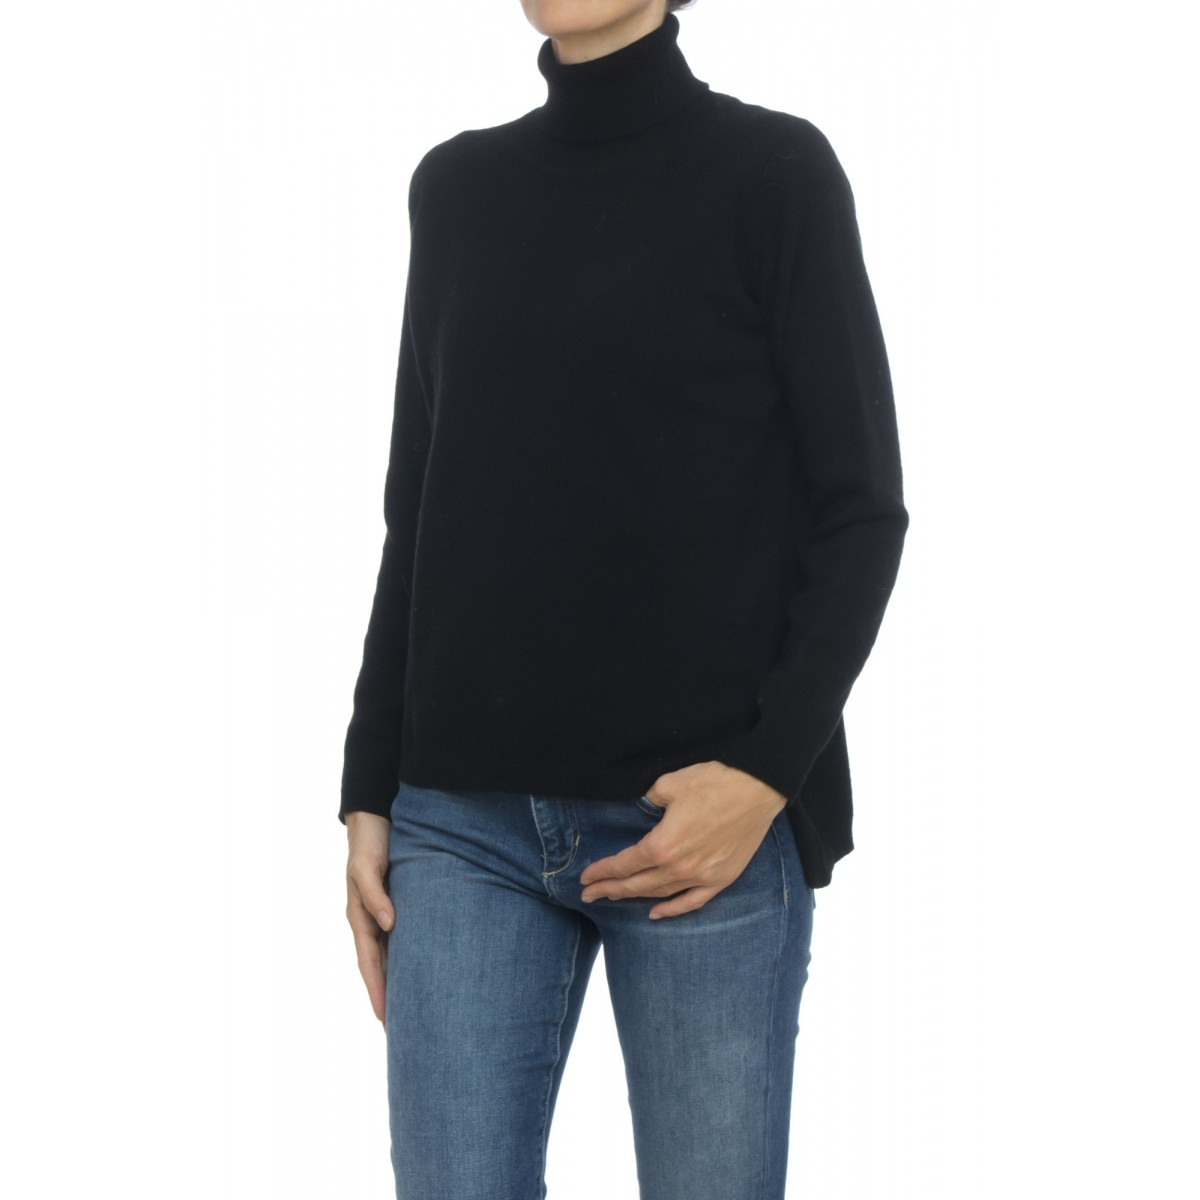 Cashmere Turtleneck Sweater Woman- CL12